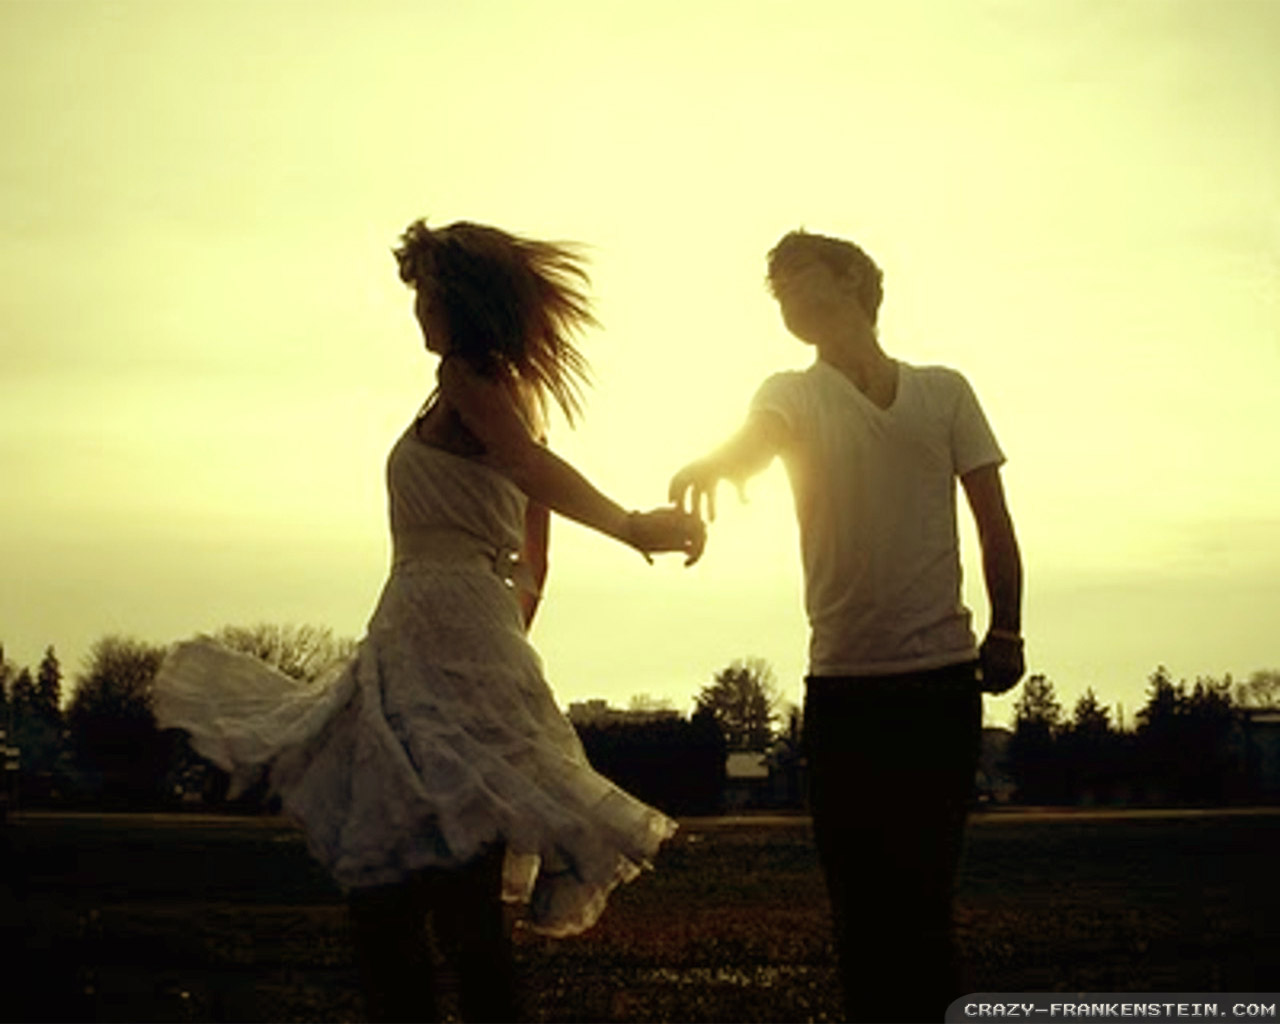 Cute Love Animations Wallpapers Romantic Dance Wallpapers Crazy Frankenstein